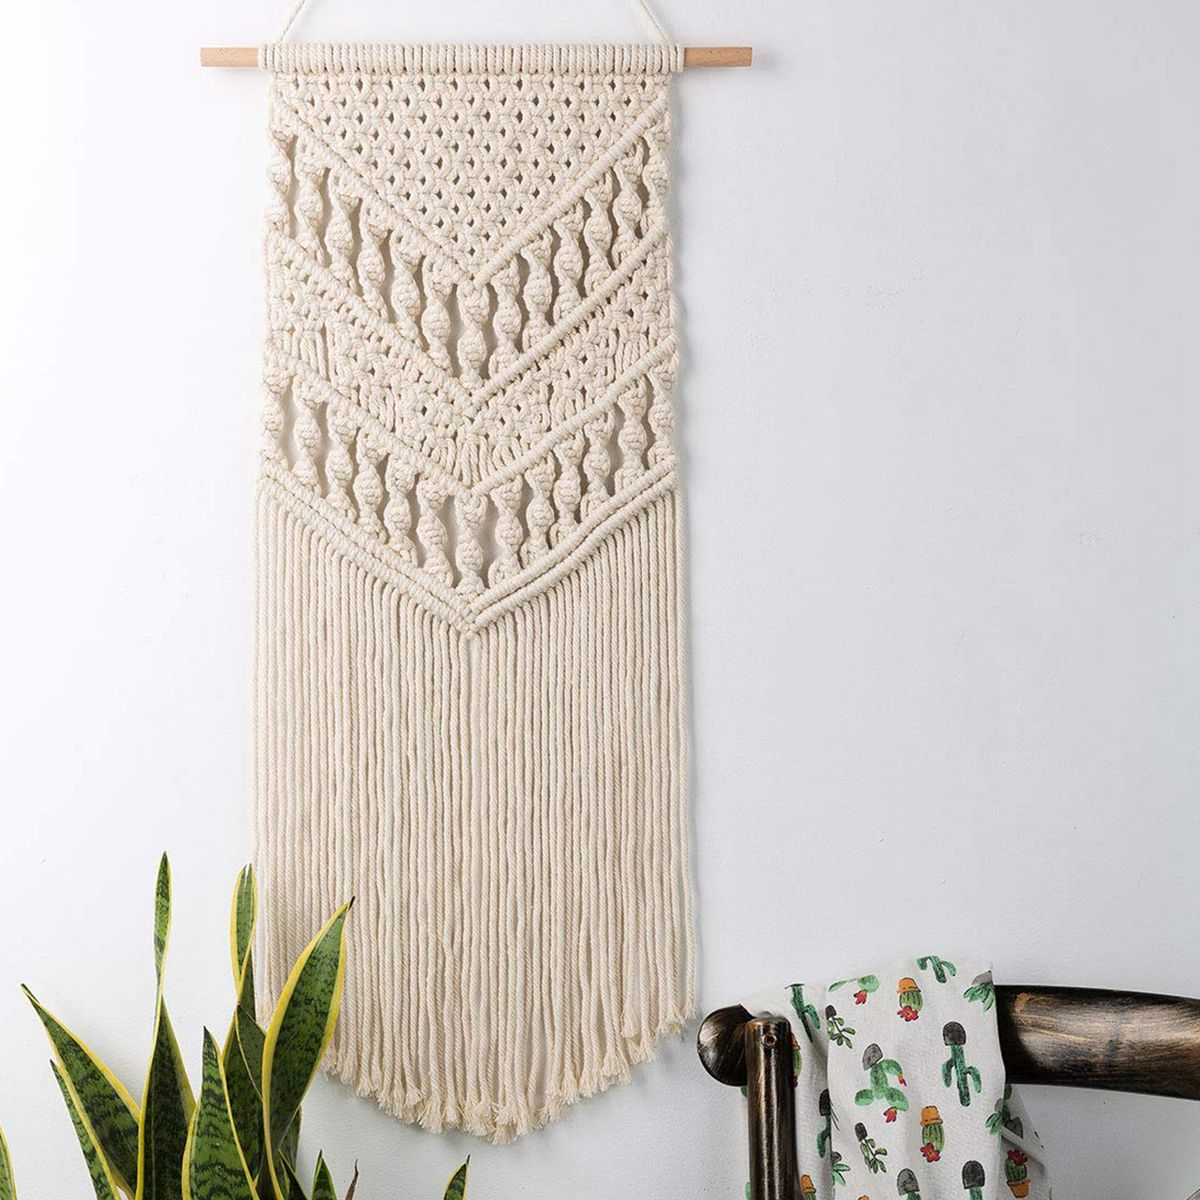 Macrame Woven Wall Hanging Boho Chic Bohemian Room Geometric Tapestry Art Beautiful Apartment Dorm Room Decoration 14in W X